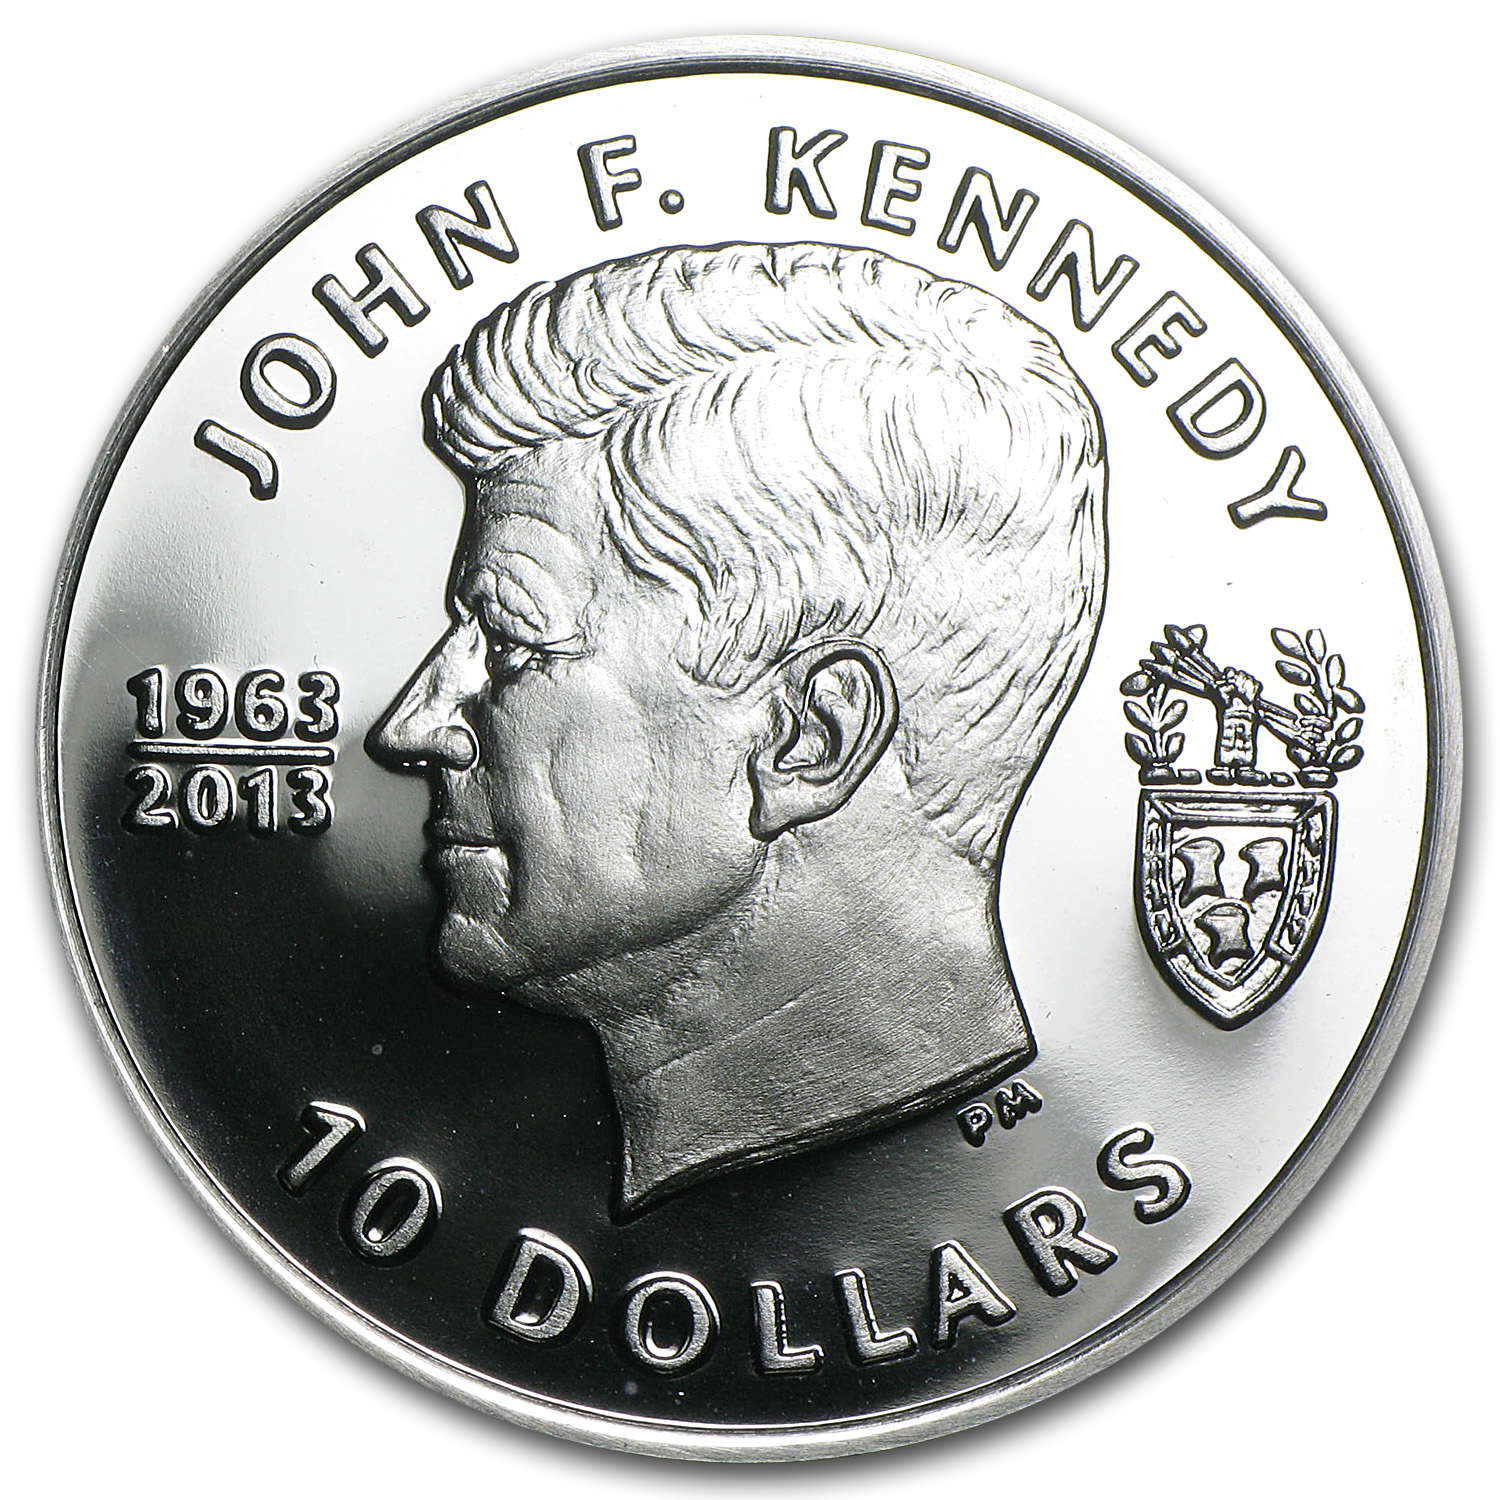 2013 British Virgin Islands $10 Silver John F. Kennedy Proof